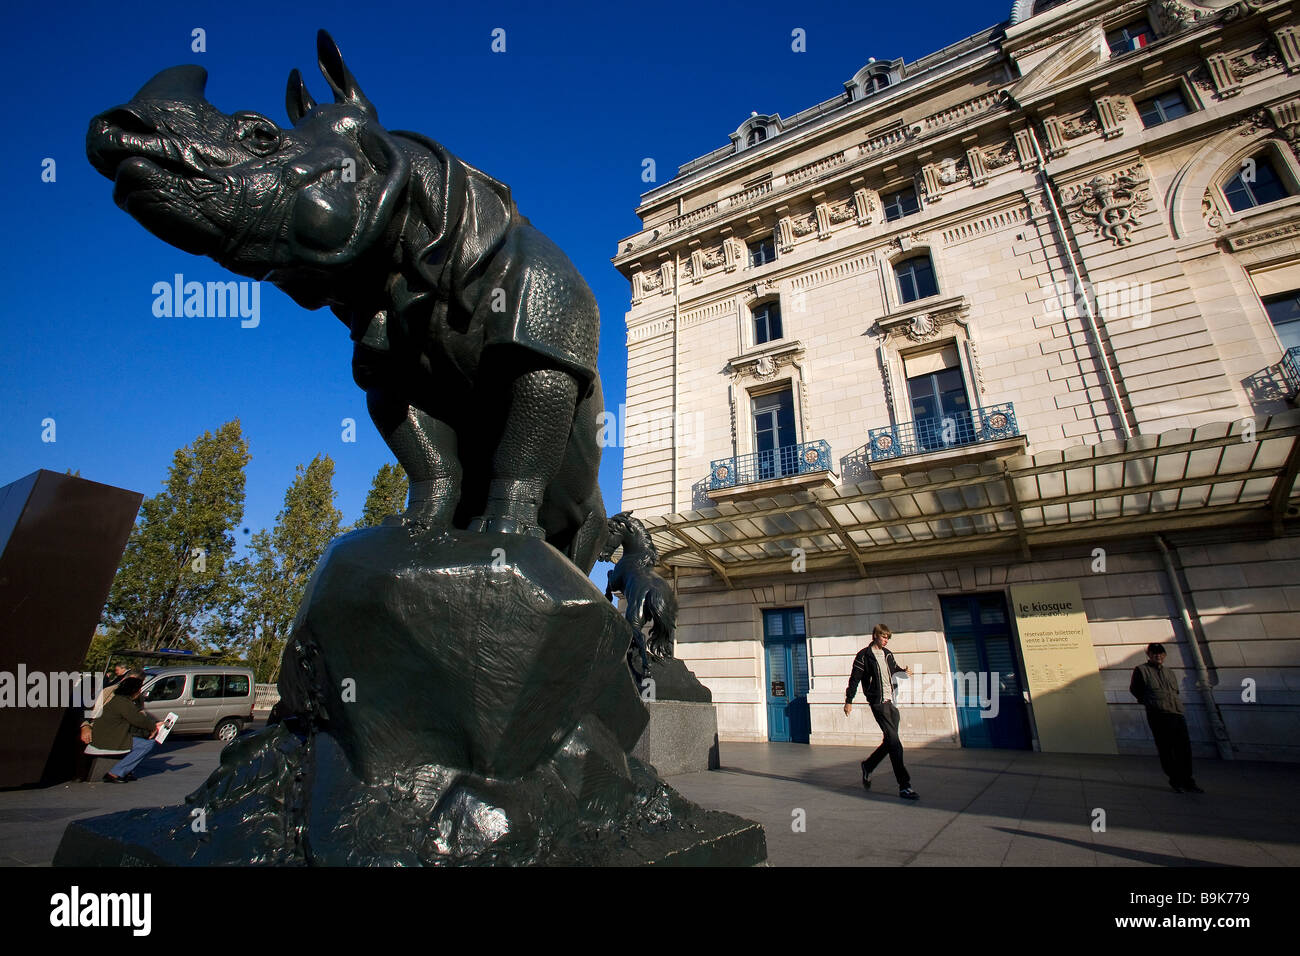 France, Paris, Musee d' Orsay, esplanade, Rhinoceros, sculpture by Henri Alfred Jacquemart - Stock Image